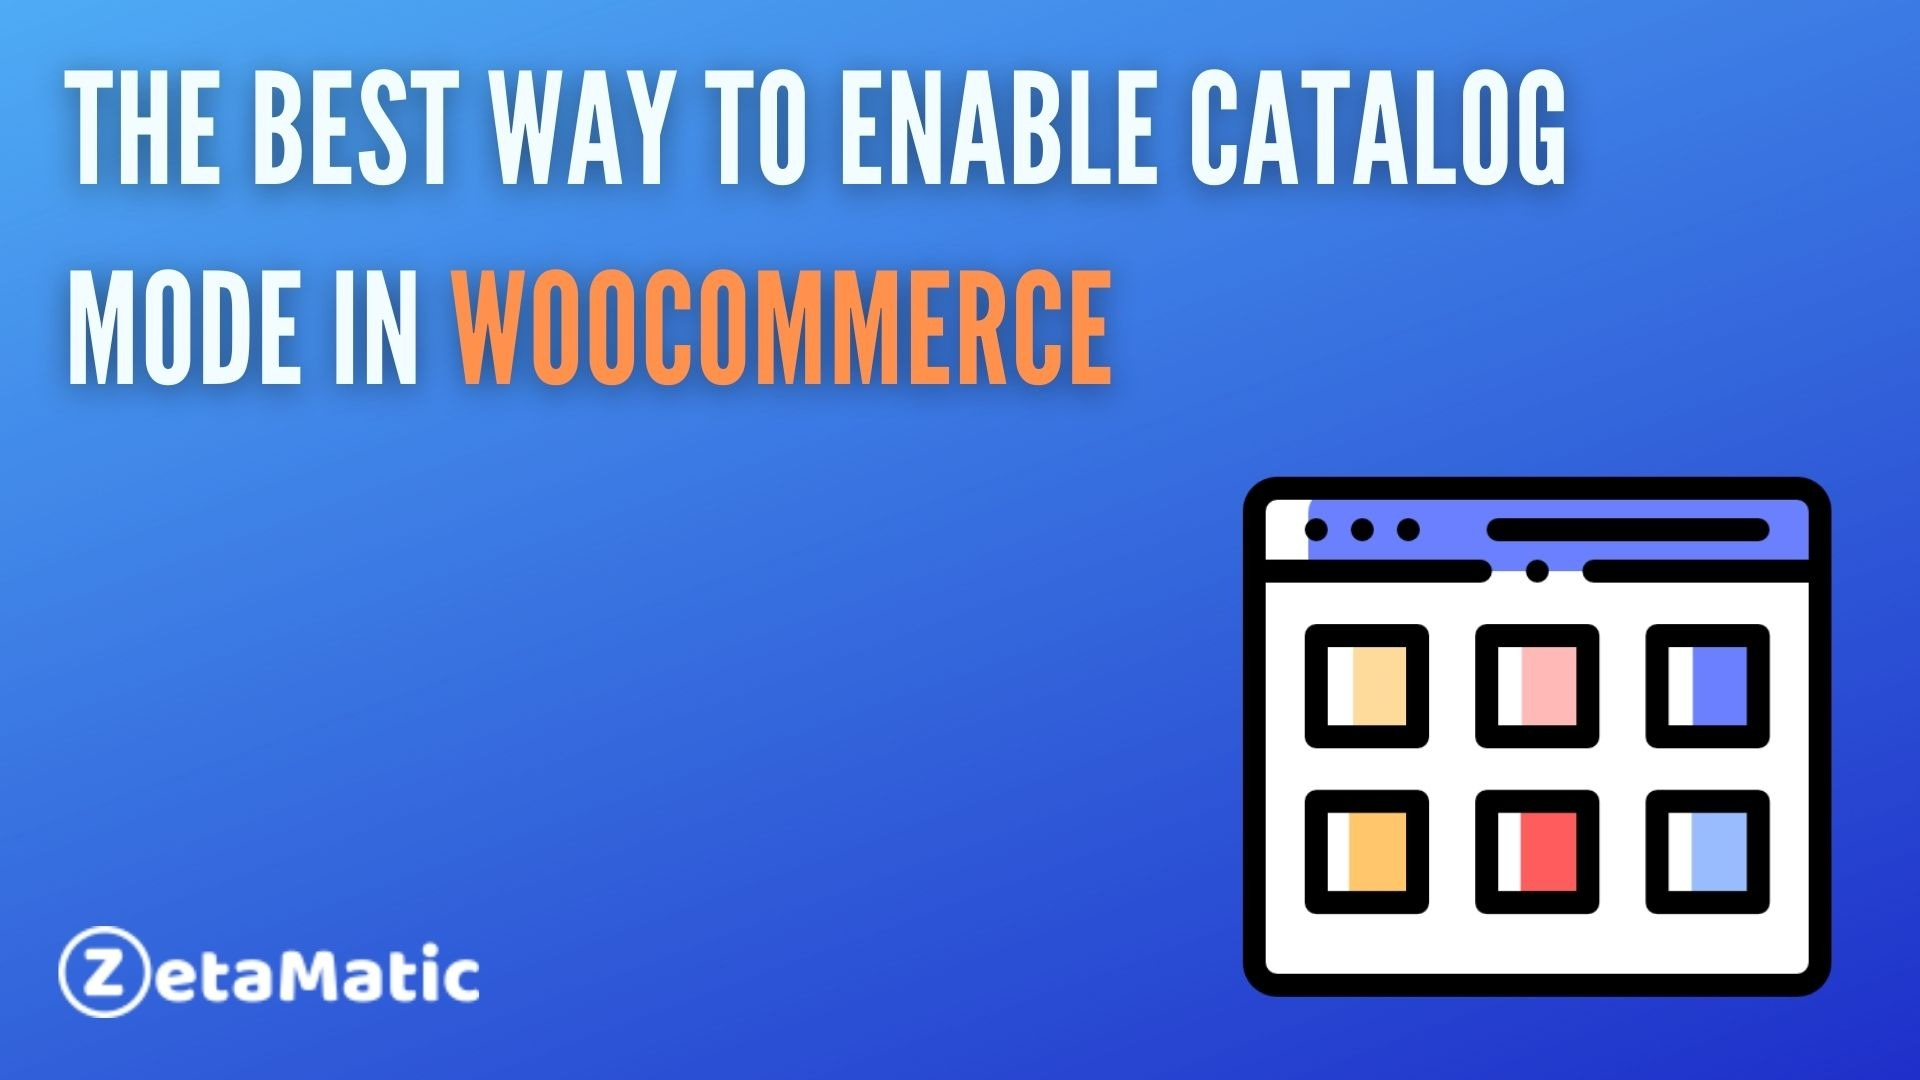 The Best Way to Enable Catalog Mode in WooCommerce